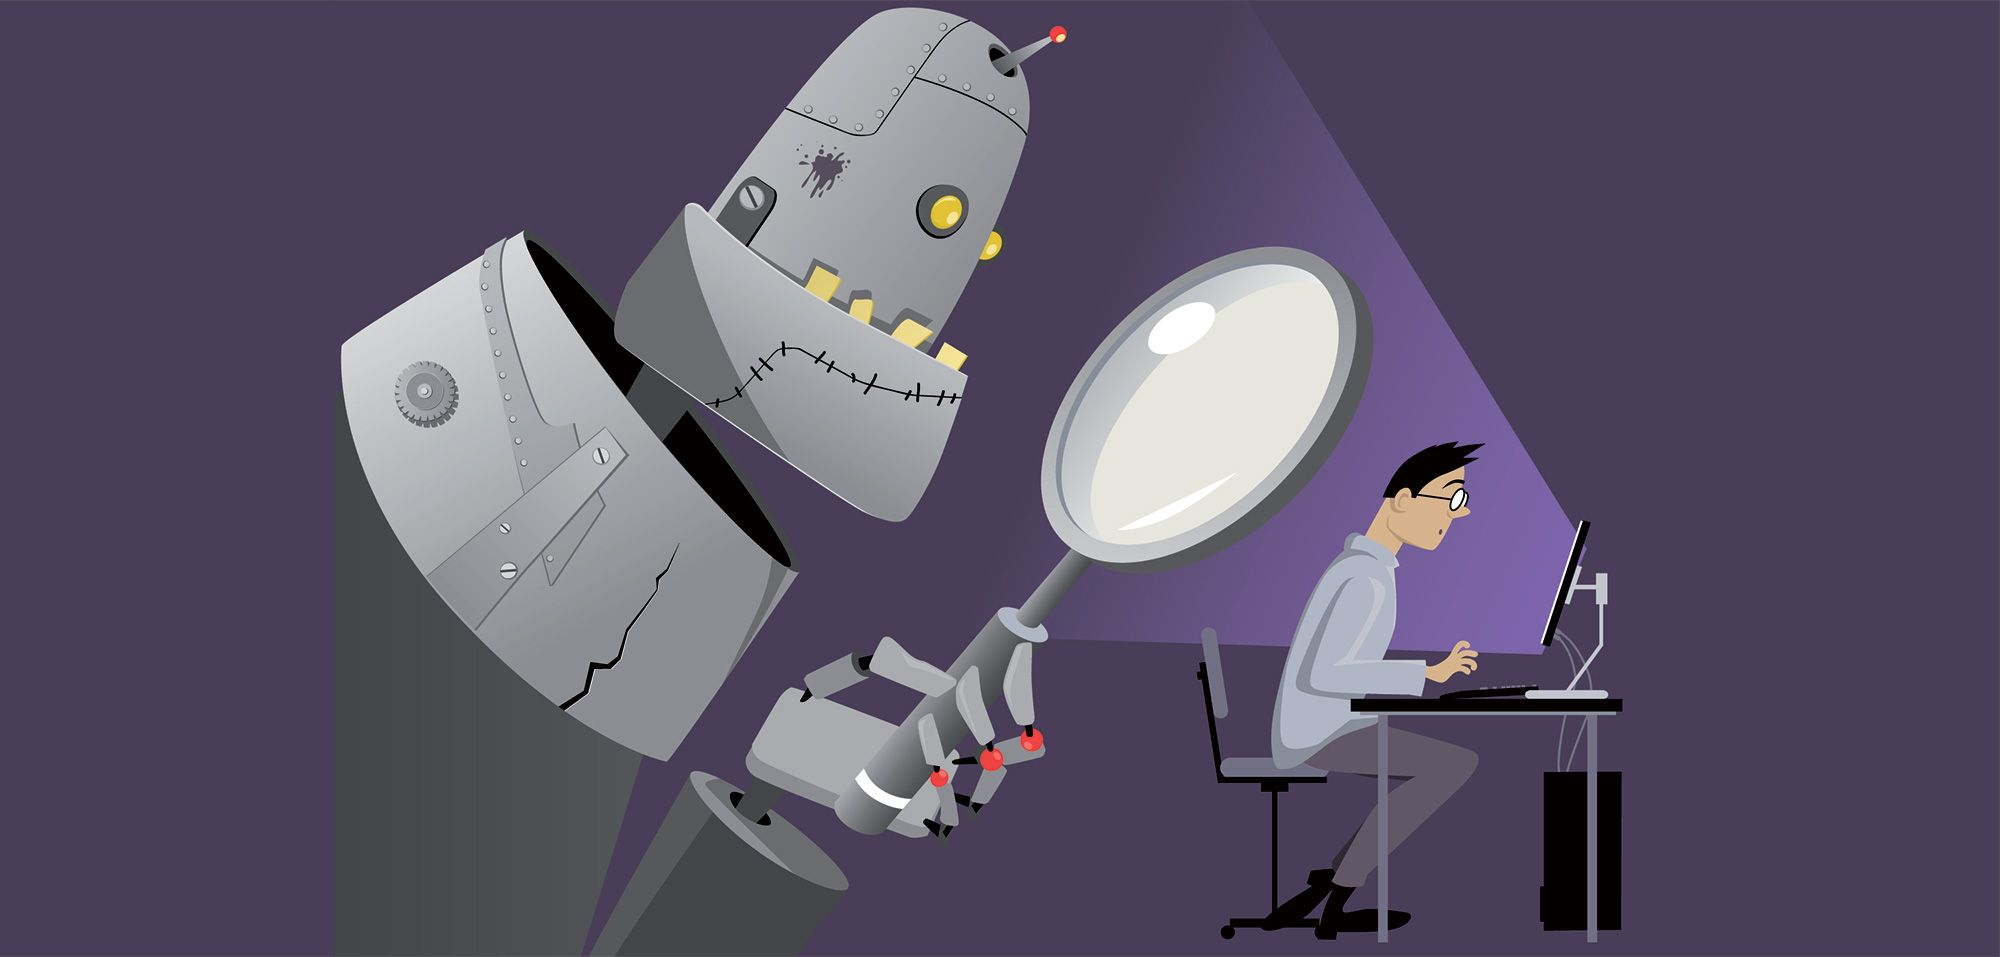 Artificial Intelligence Ai Can Play A Significant Role In Corporate Governance Serving To Augment The Decision Making Processes By Leadership